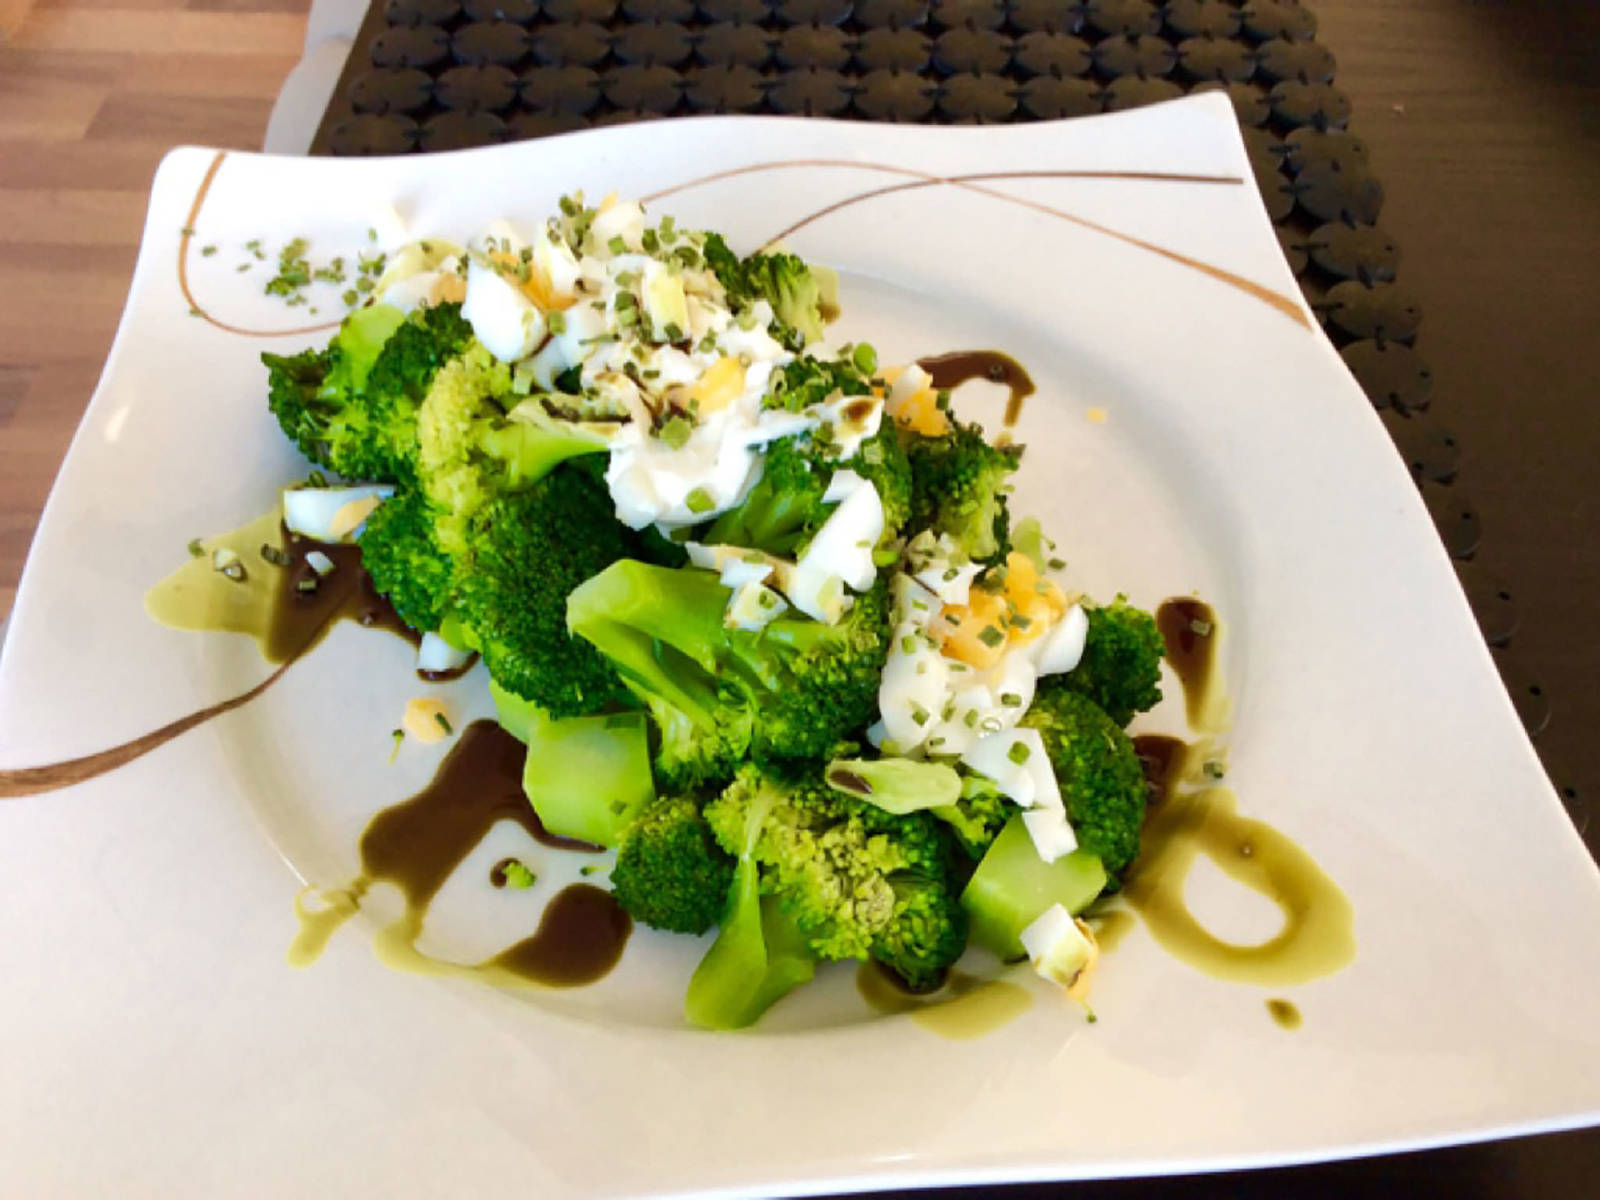 Place broccoli on a plate, add crème fraîche mixture, and crumble egg on top. Serve with pumpkin seed oil, salt, and pepper.